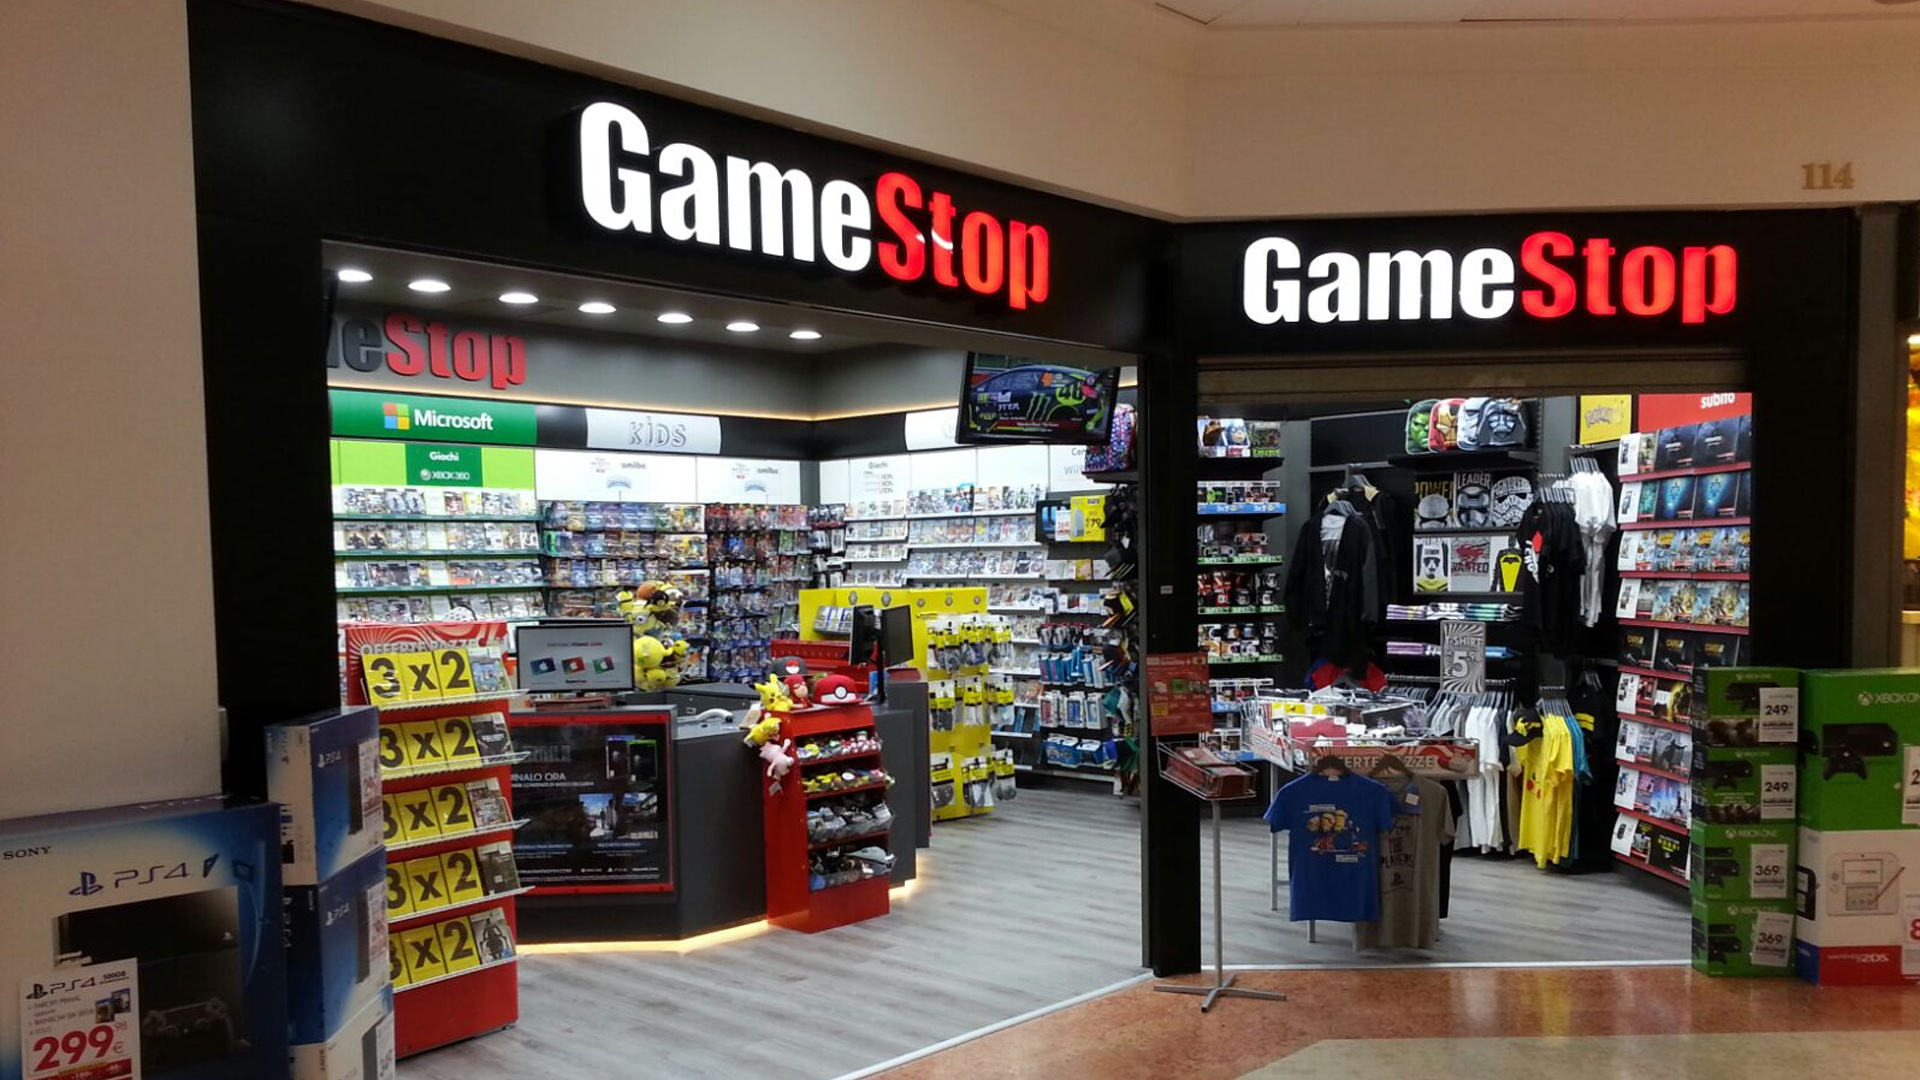 GameStop temporarily halts unlimited used games program